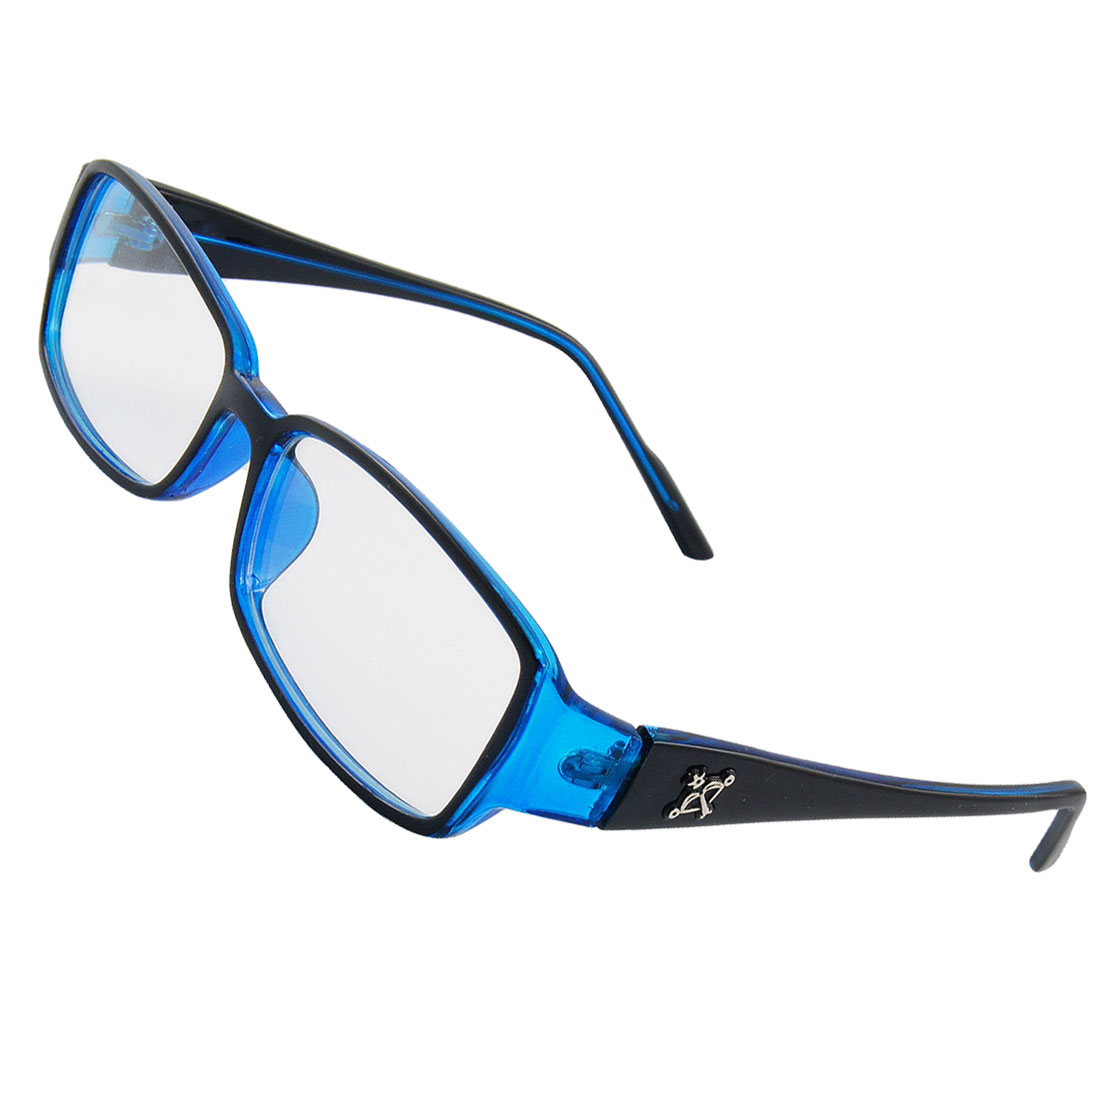 Black Blue Plastic Trophy Inlaid Arms Plano Glasses for Woman